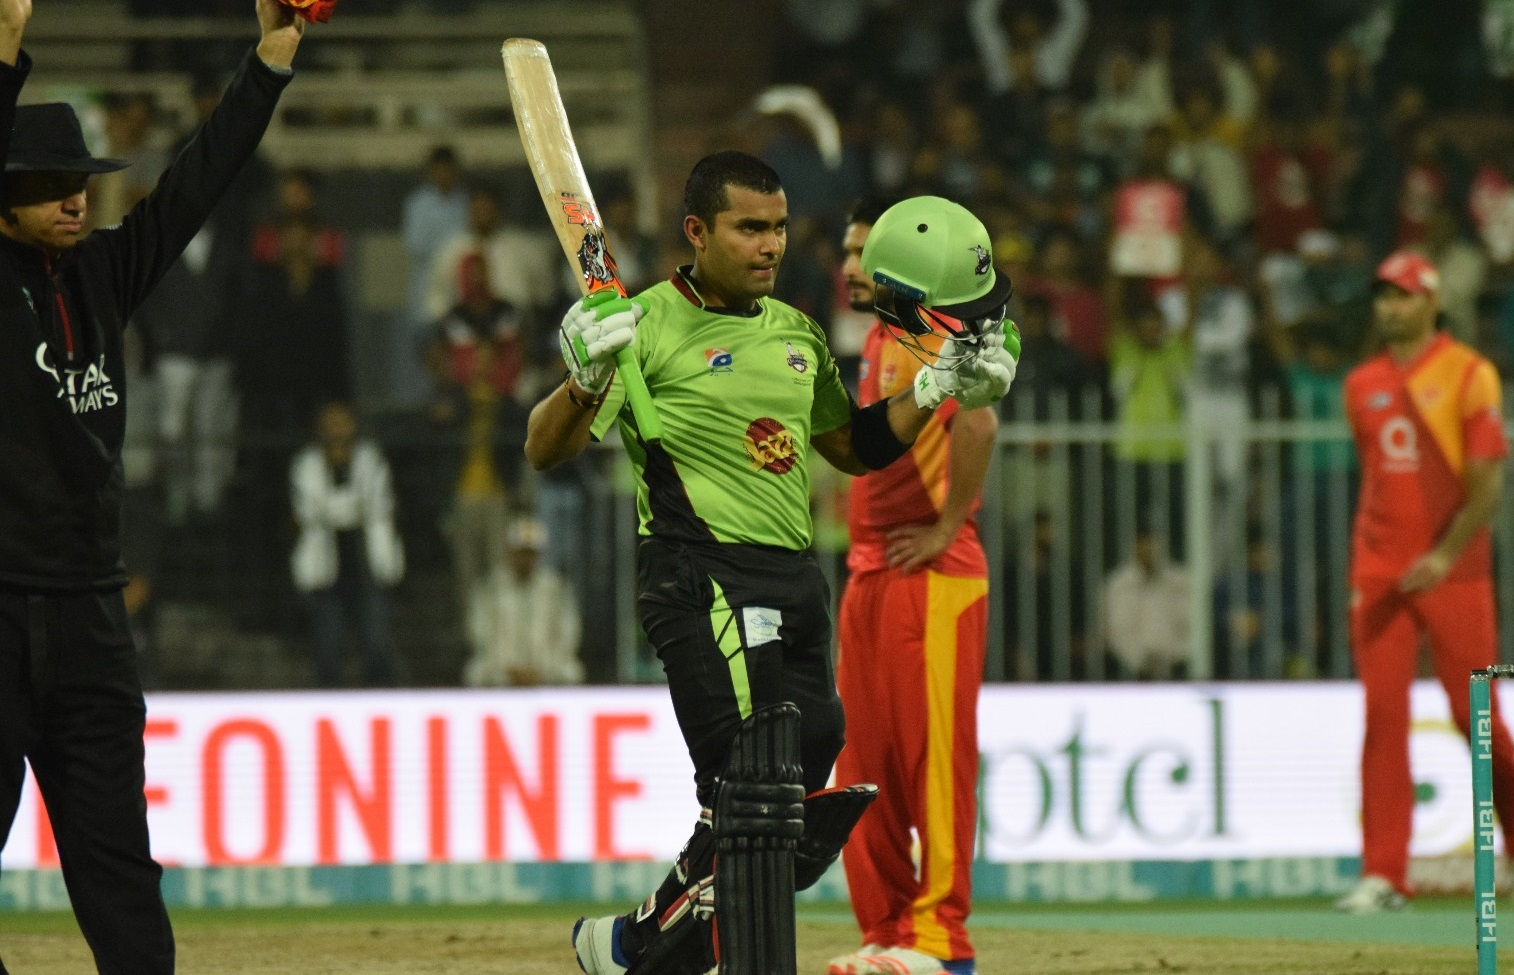 Umar Akmal leads Lahore Qalandars to a narrow victory against Islamabad United